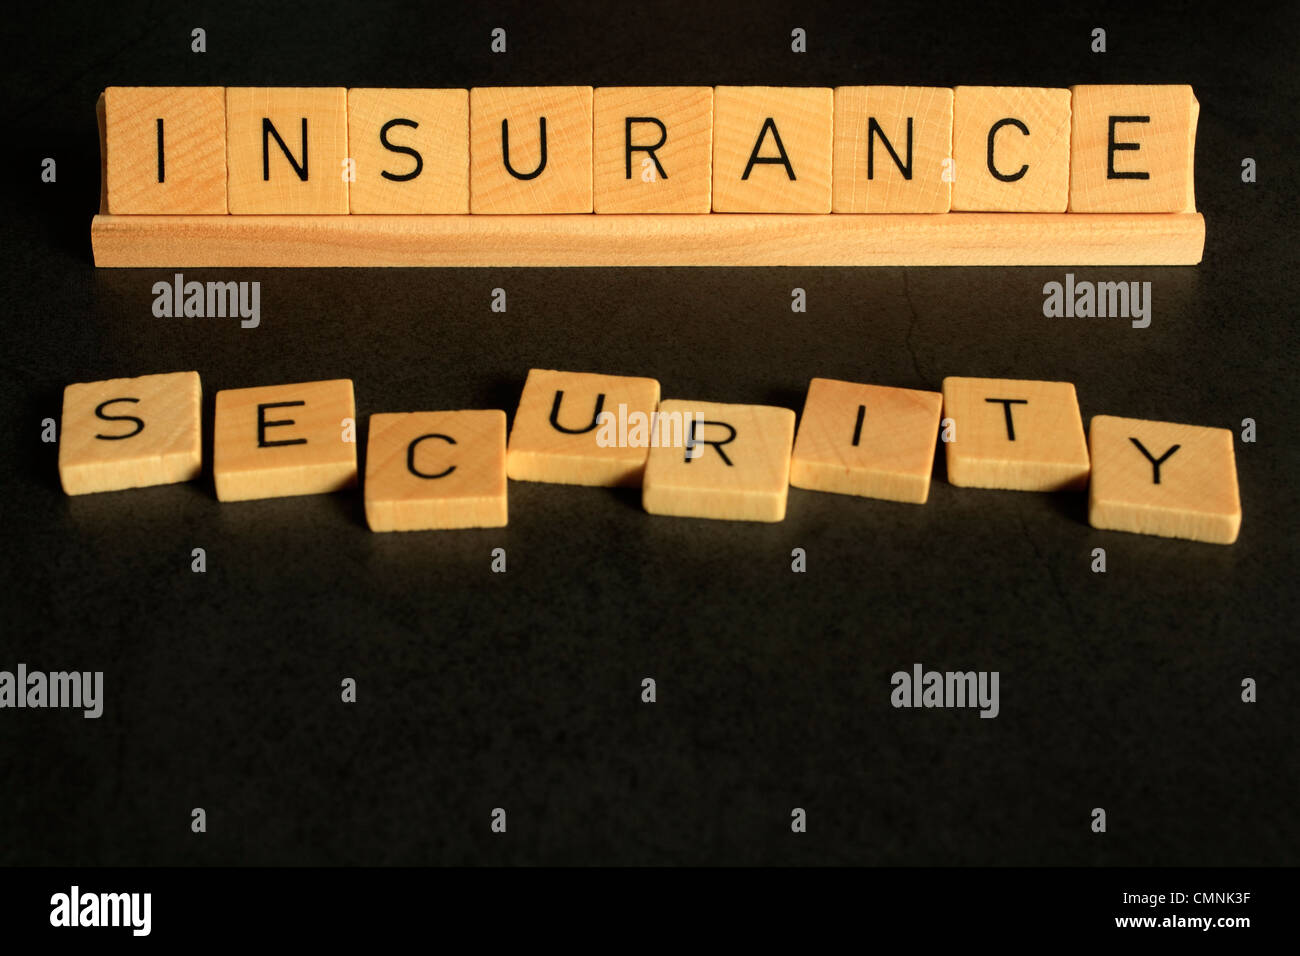 Insurance and security cpncept, with words spelled out in alphabet letters. On a dark, textured background. - Stock Image